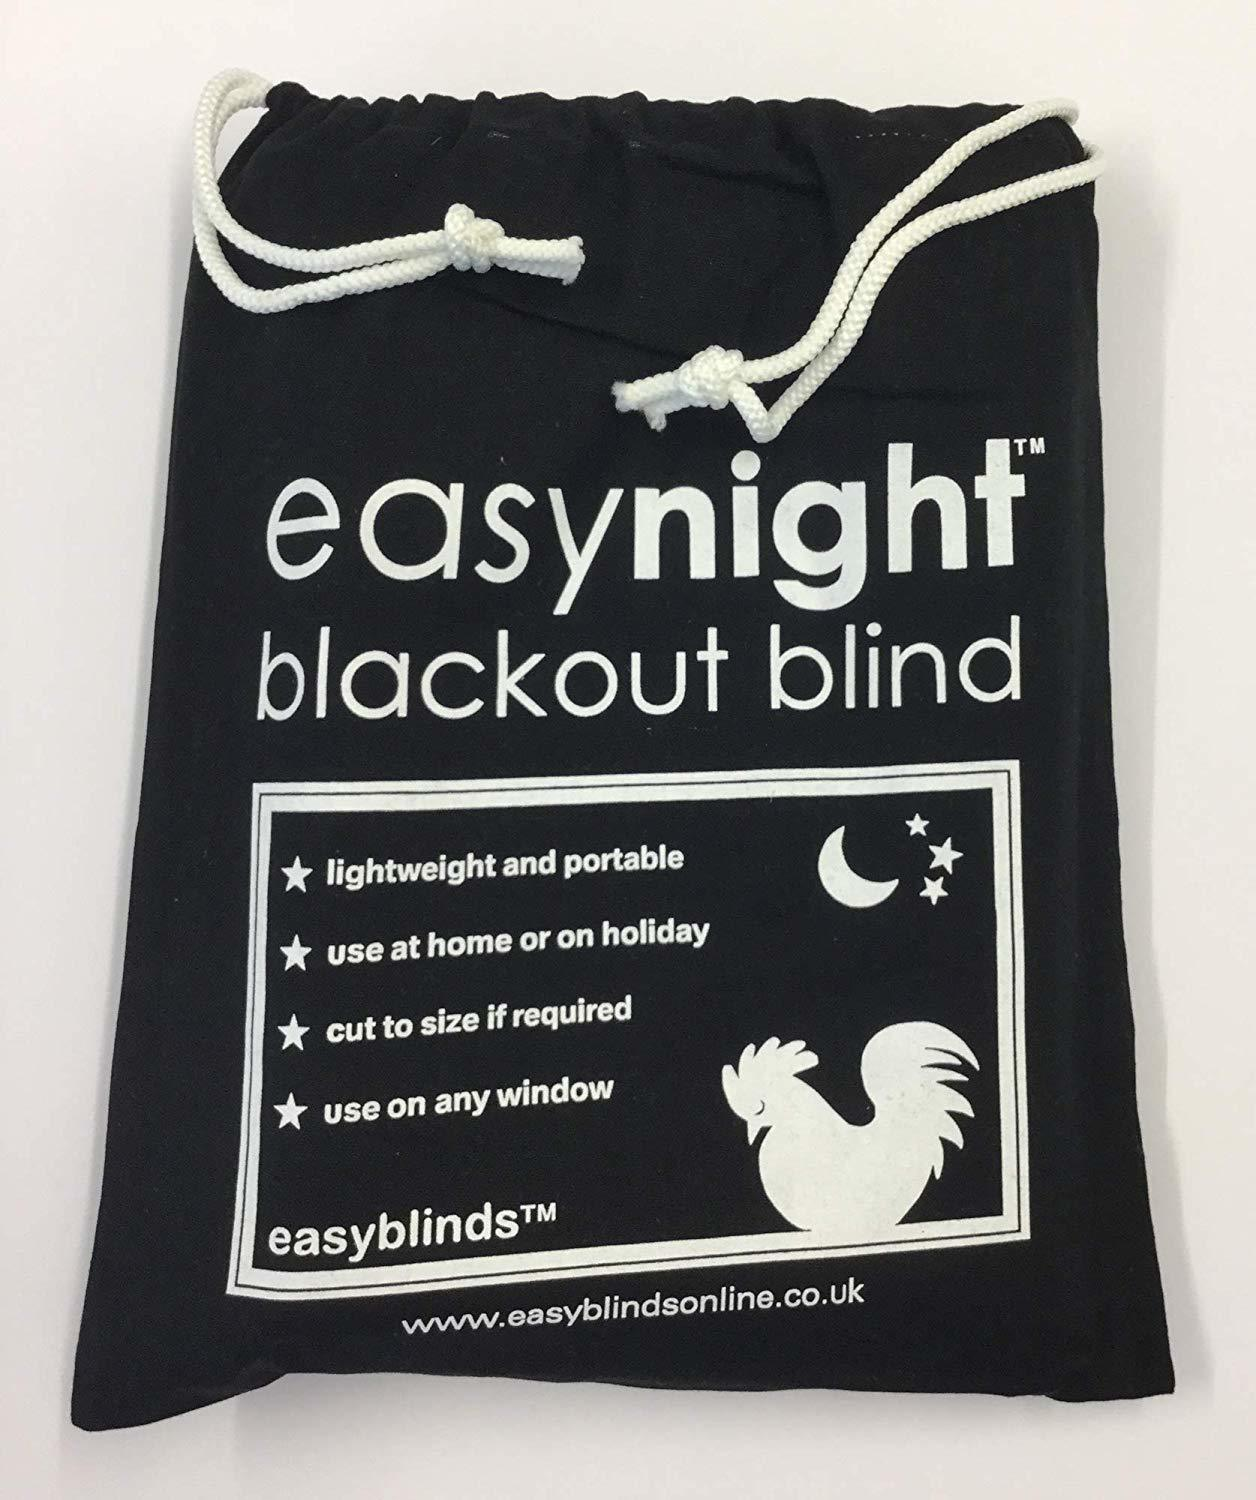 Easynight: Blackout Blind - Regular (1.5m x 1.4m) image